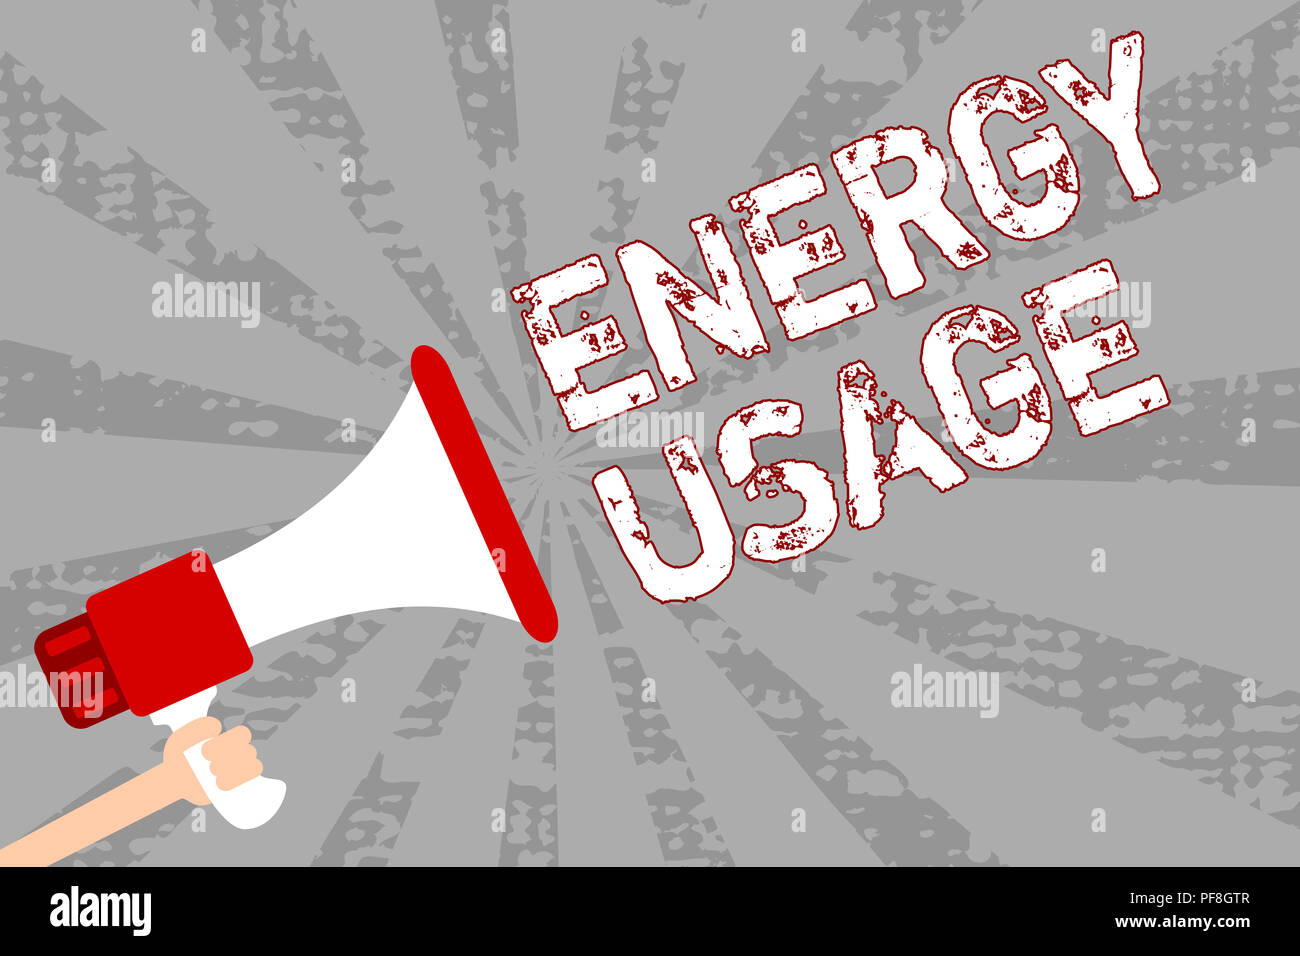 Writing note showing Energy Usage. Business photo showcasing Amount of energy consumed or used in a process or system Man holding megaphone loudspeake - Stock Image